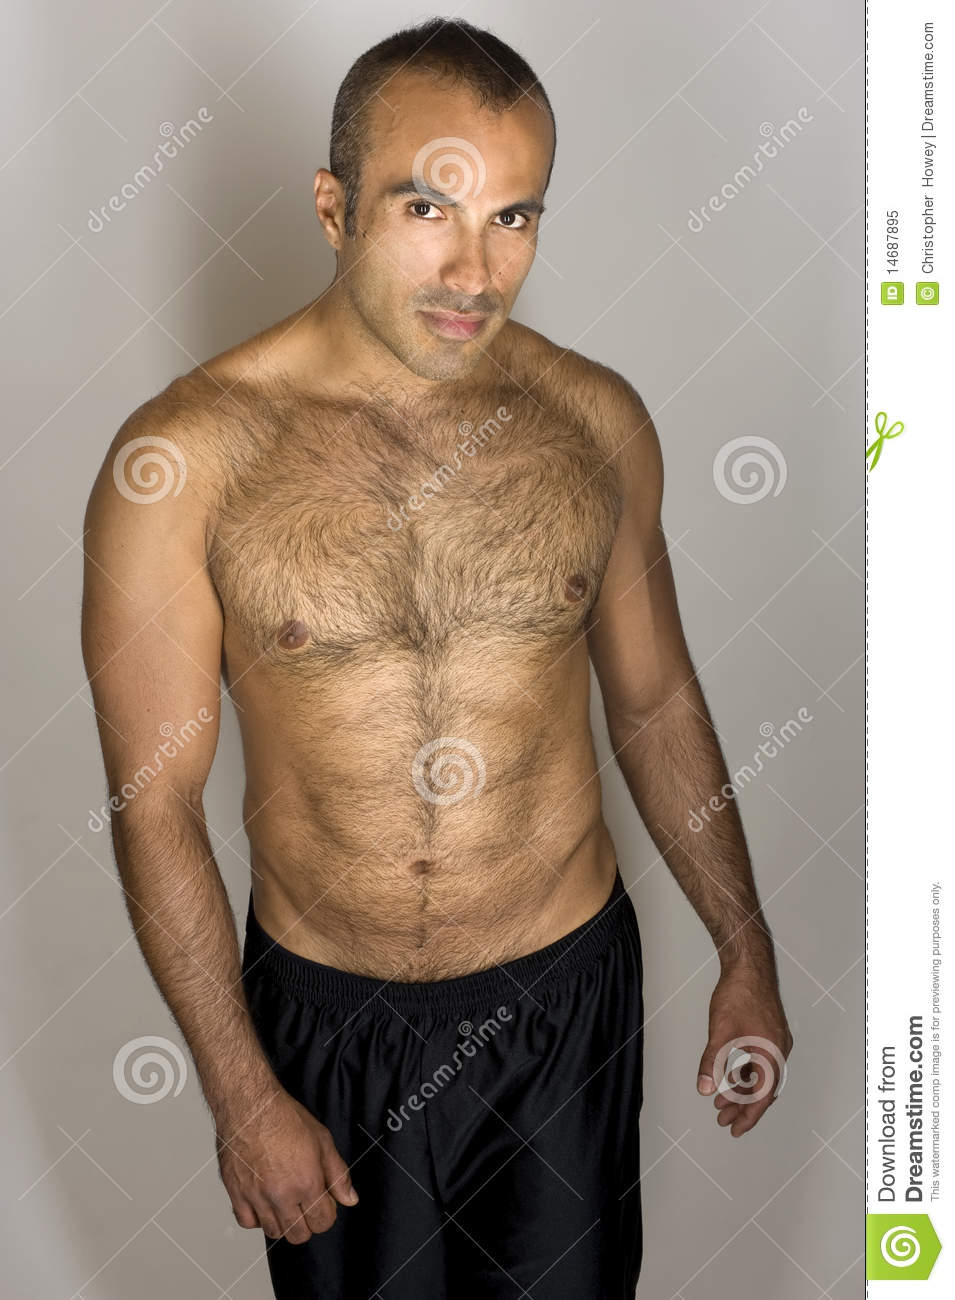 Sexy Hispanic Male Stock Photos - Royalty Free Pictures